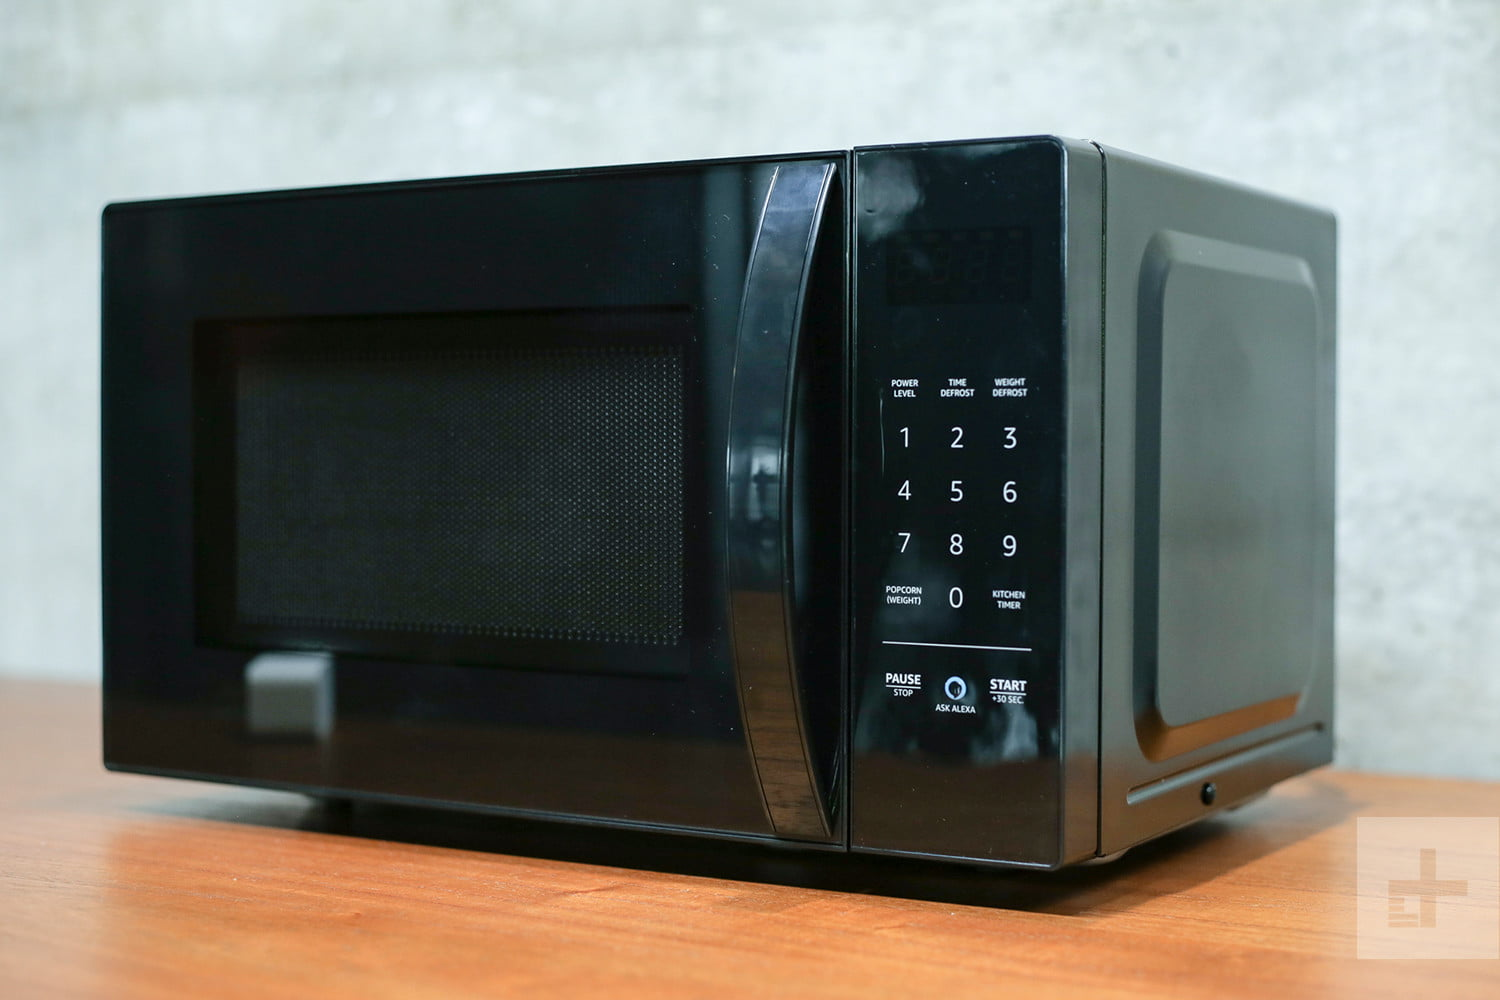 How To Clean A Microwave Safely And